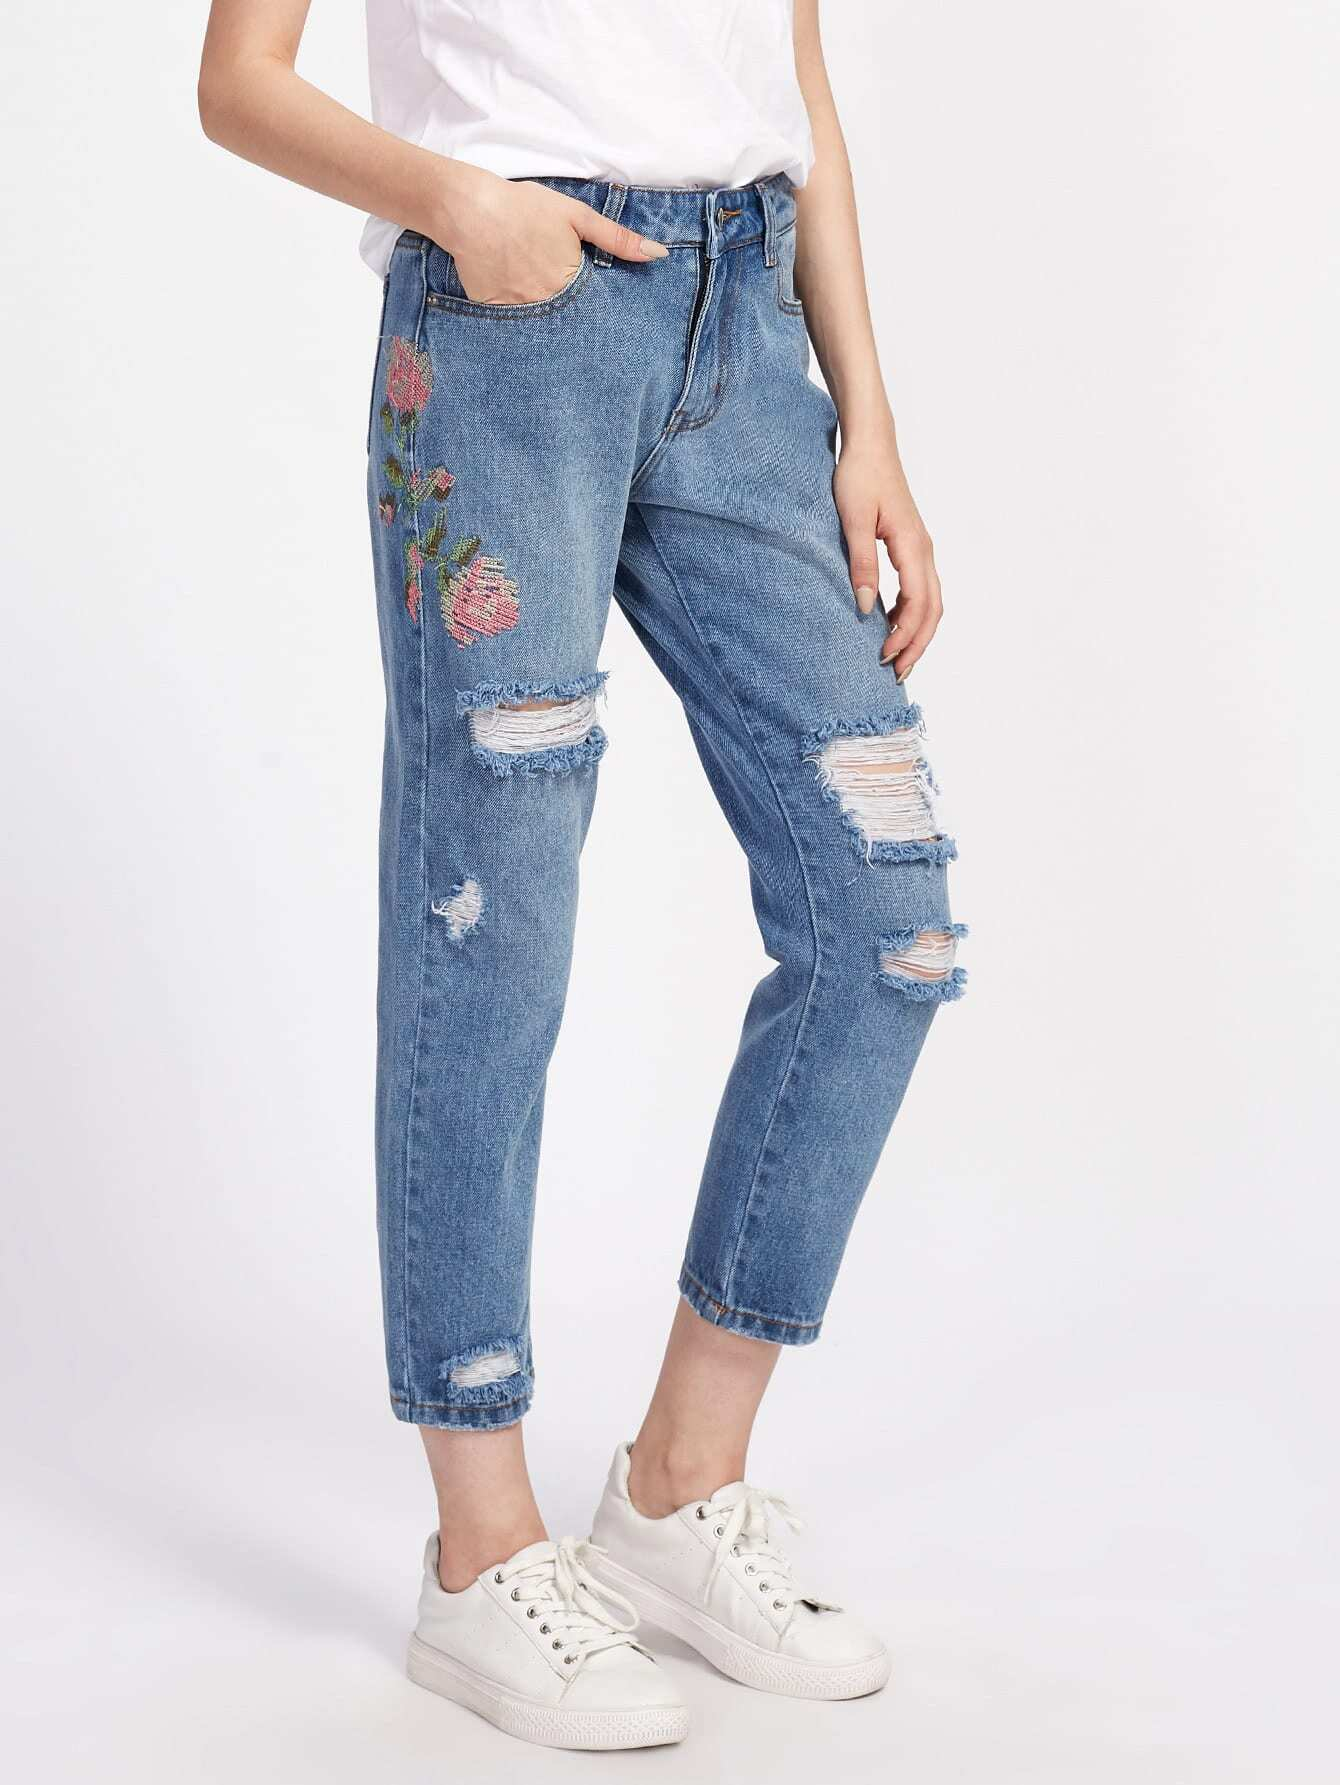 Flower Embroidered Distressed Jeans straight leg distressed embroidered jeans